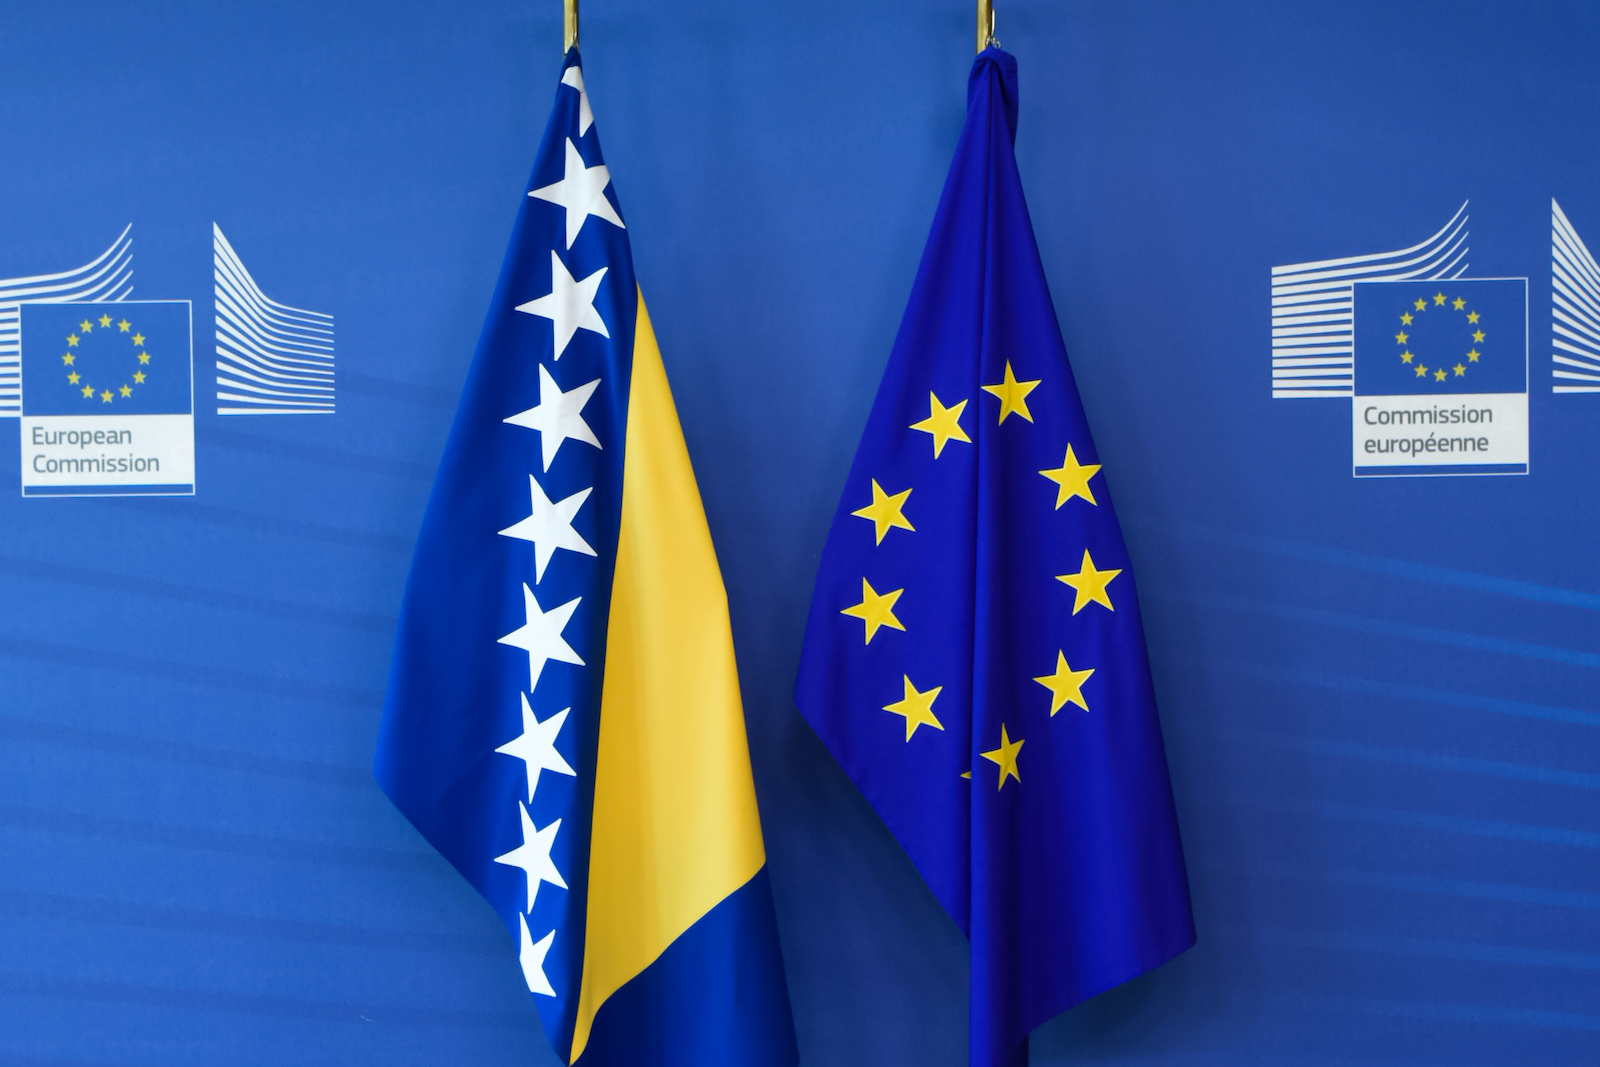 EU to provide EUR 7 mln assistance to BiH for the immediate needs of the public health system